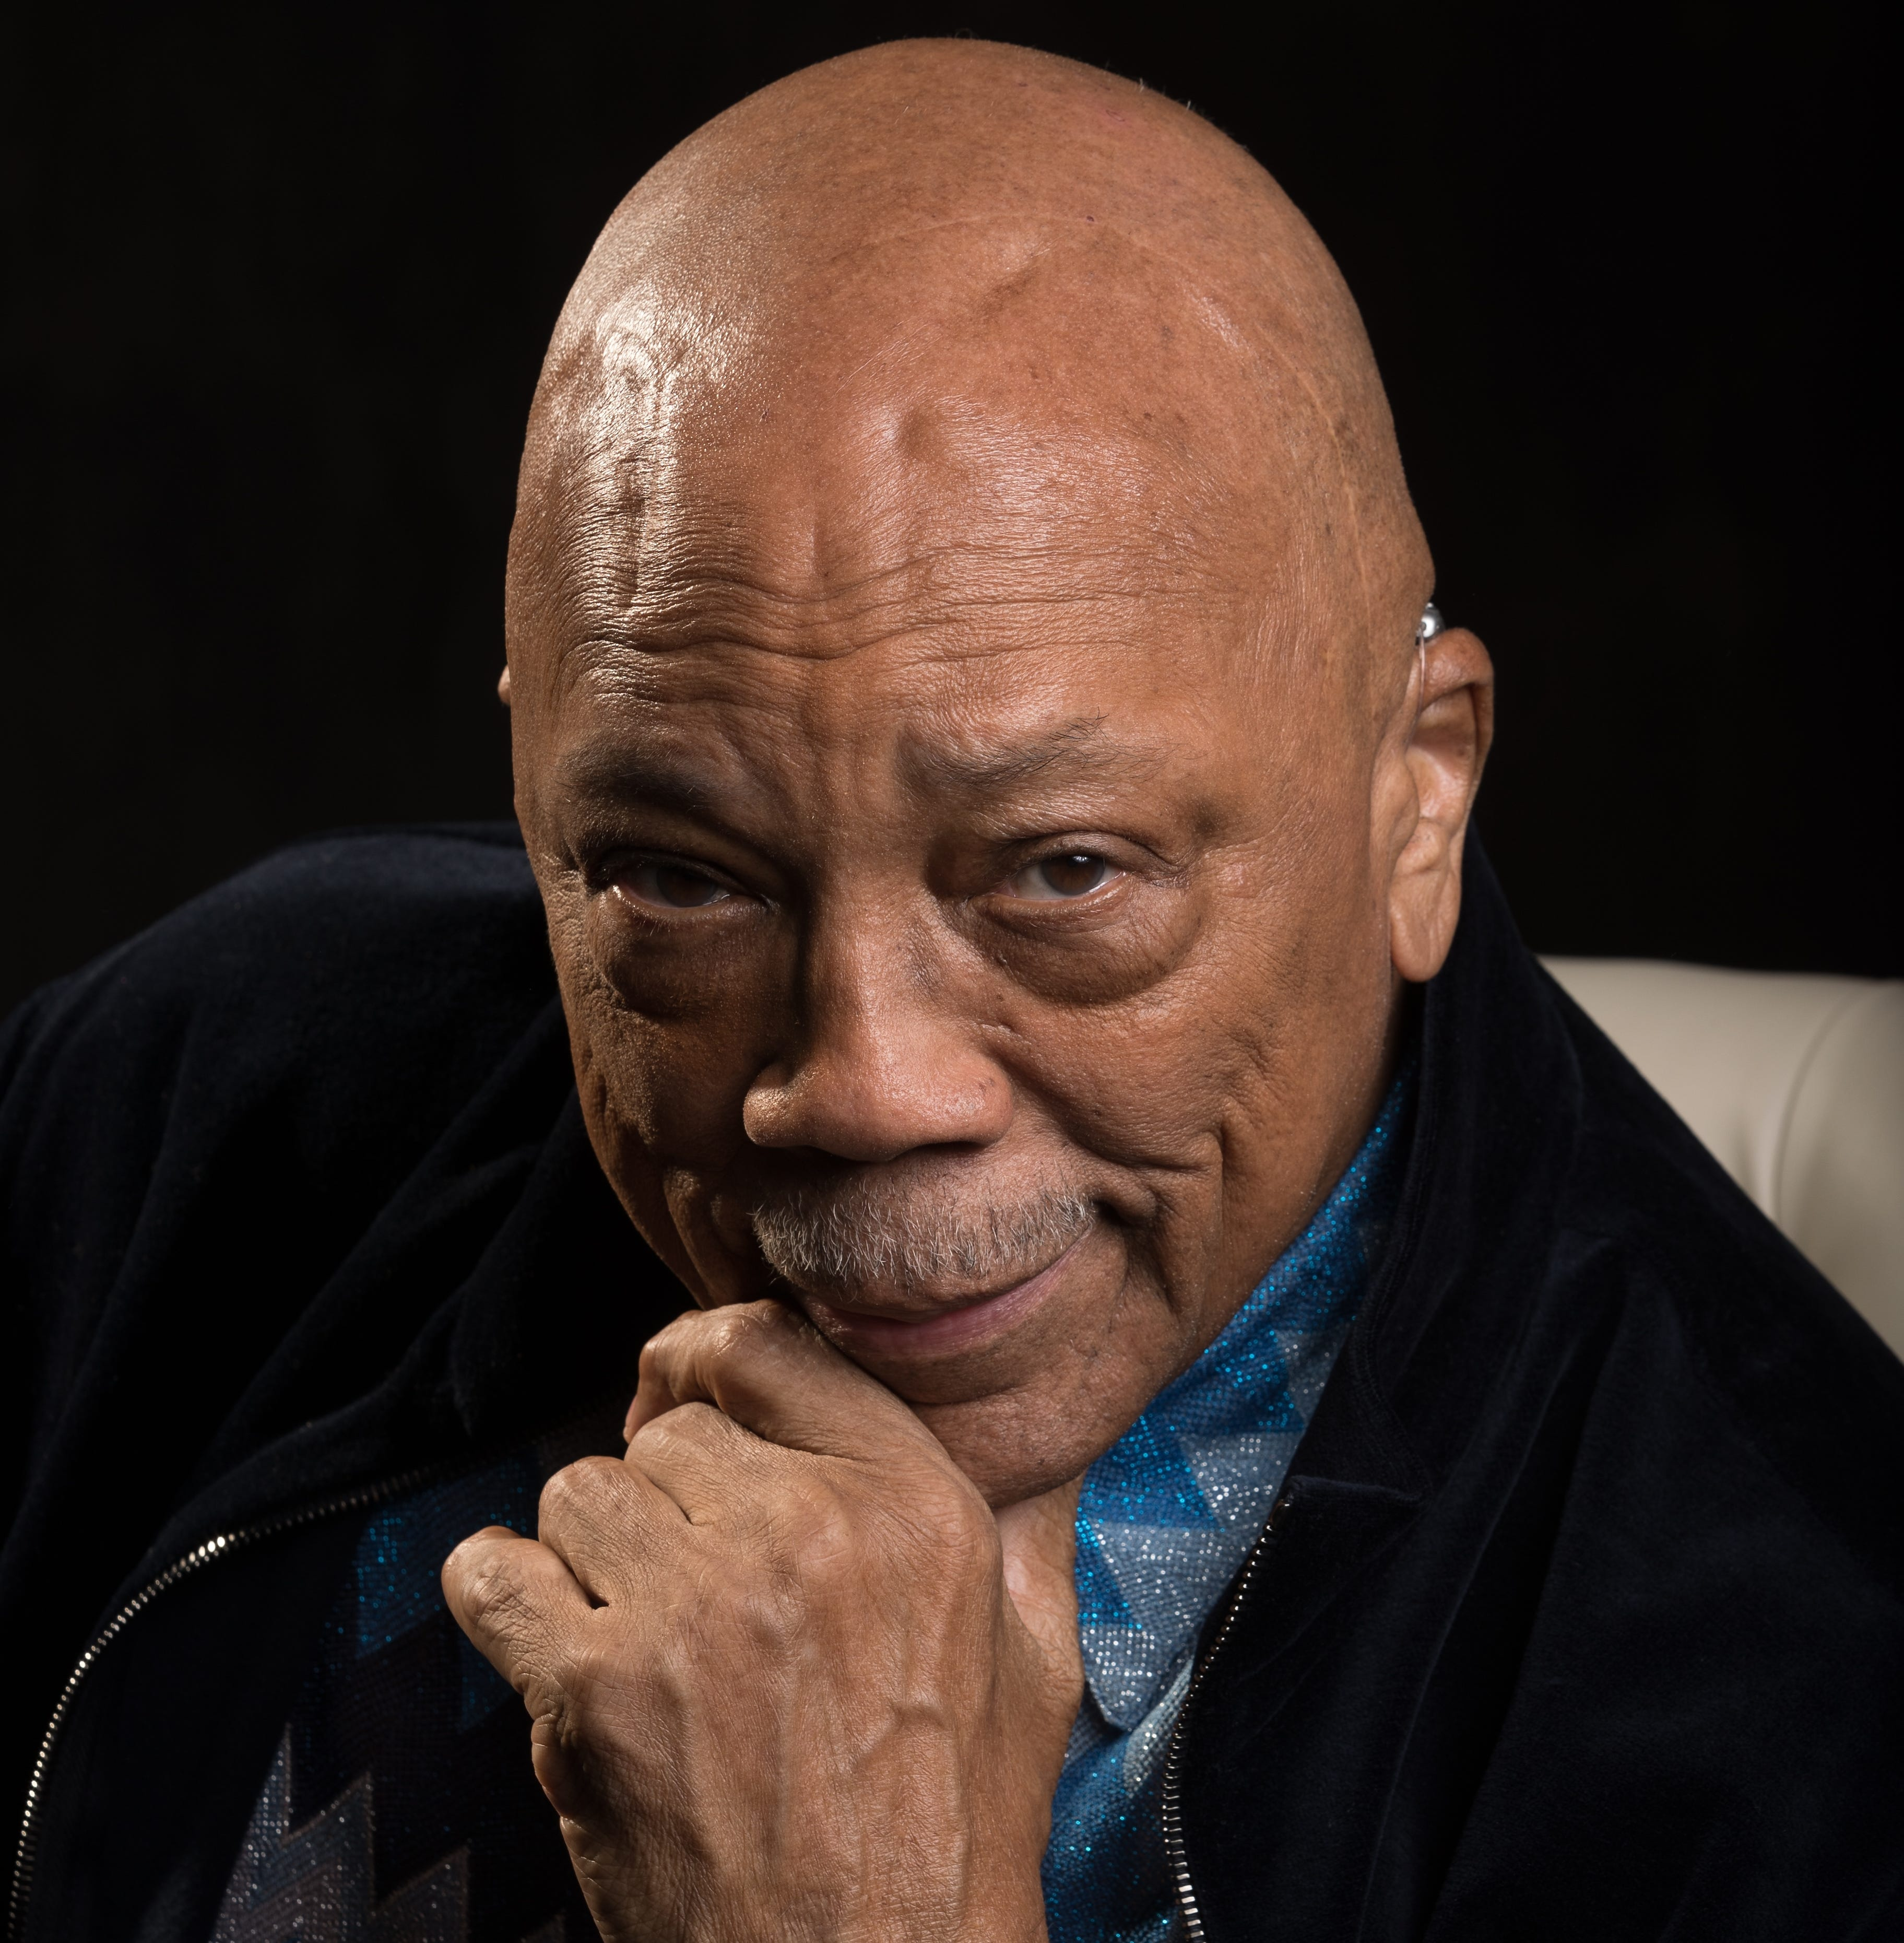 Quincy Jones shows he's been 'kicking booty every decade' in jaw-dropping Netflix doc